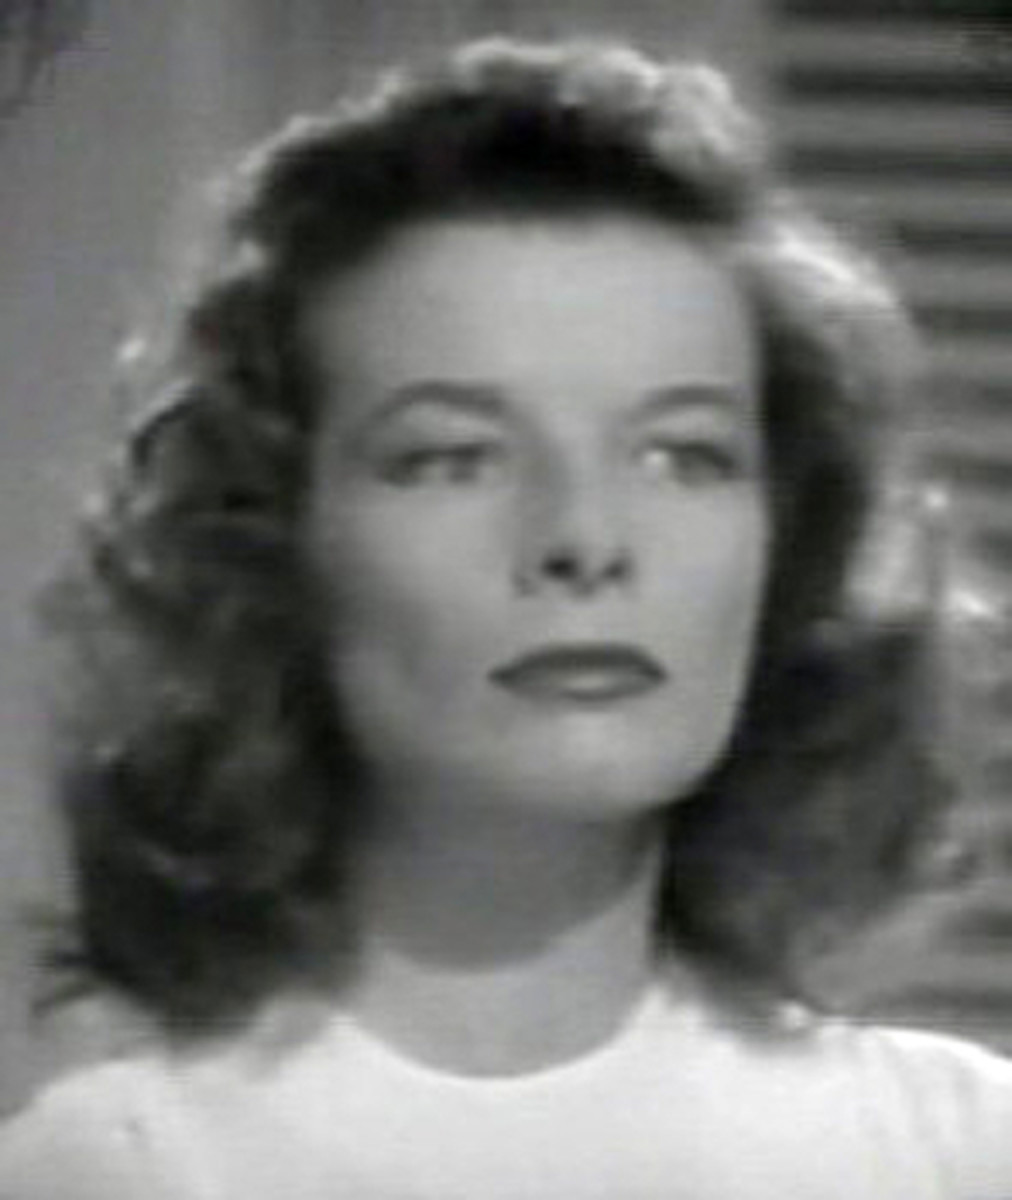 Katharine Hepburn's face still looks square in The Philadelphia Story, but without the bangs, it appears much less squashed.  Her curls round out and soften the top of her head and the angles of her face, ending prettily below the neck.